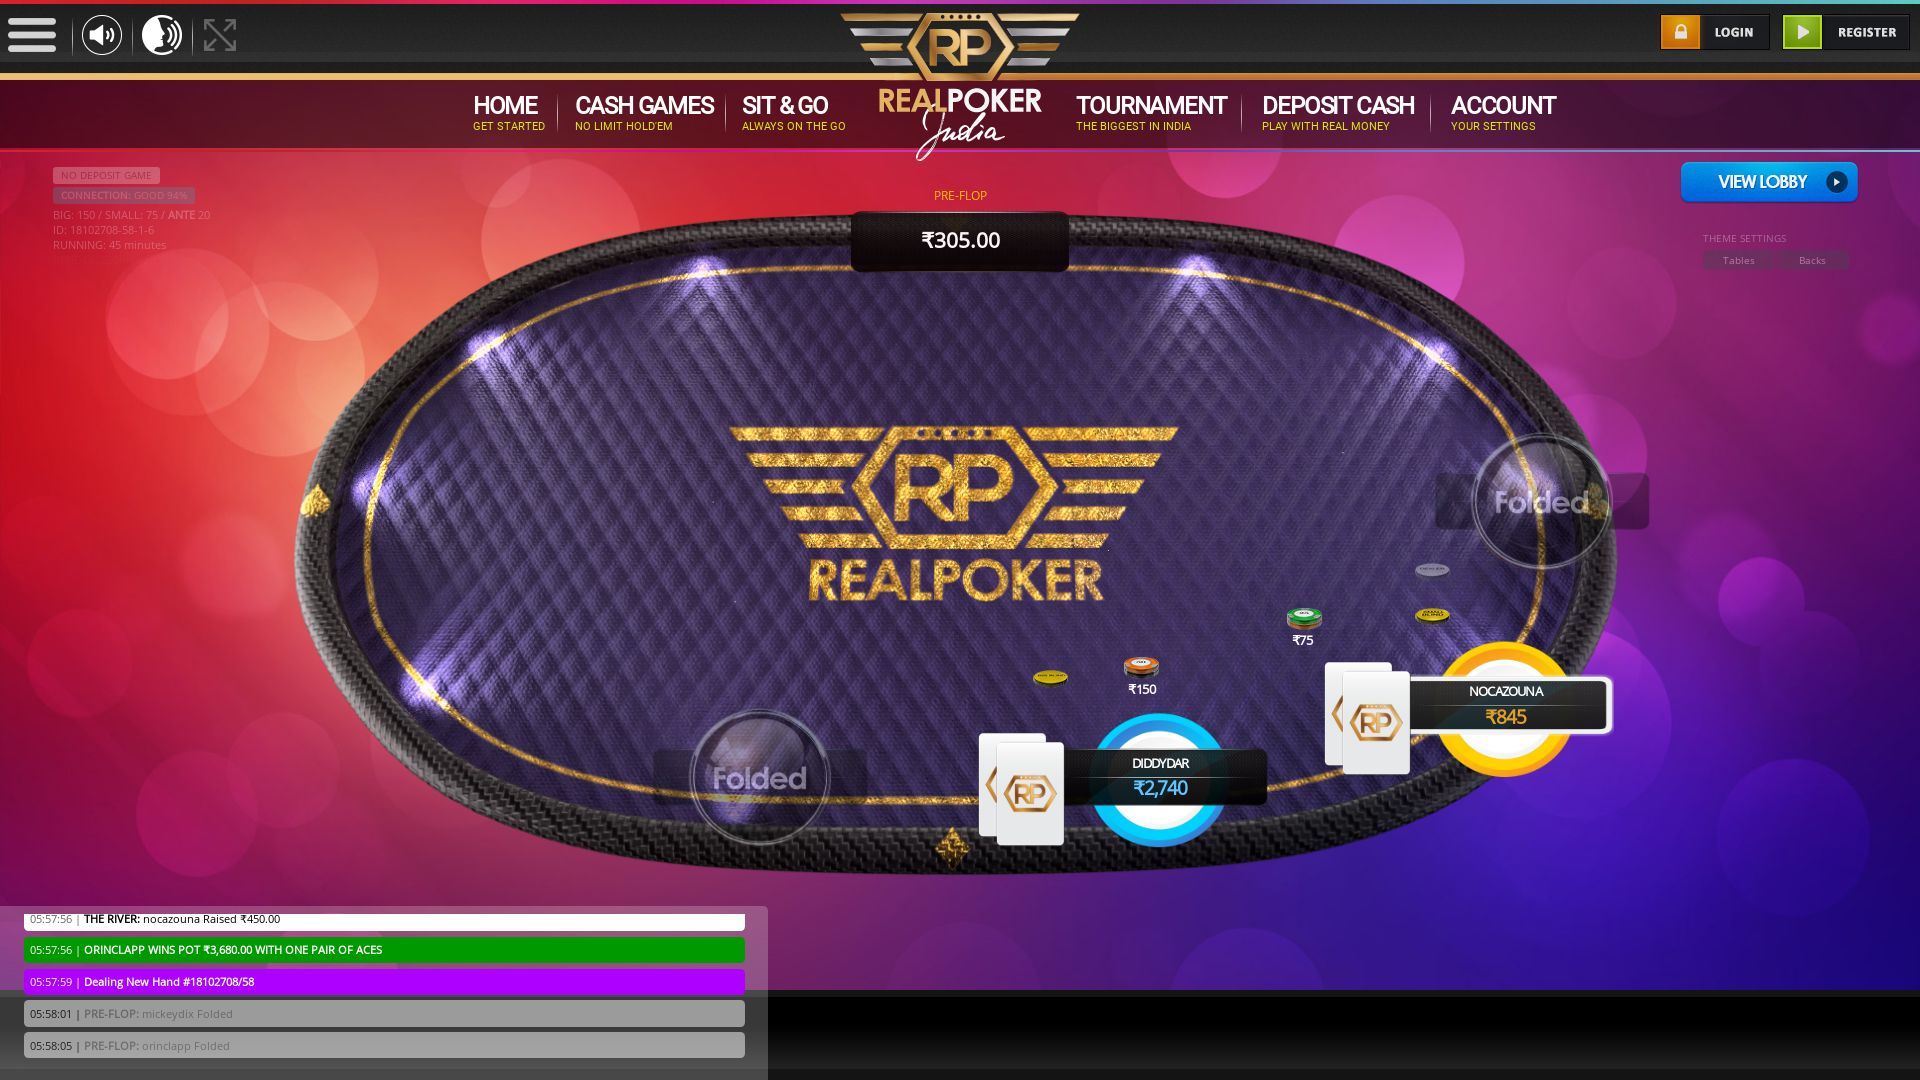 Mahim, Mumbai online poker game on a 10 player table in the 44th minute